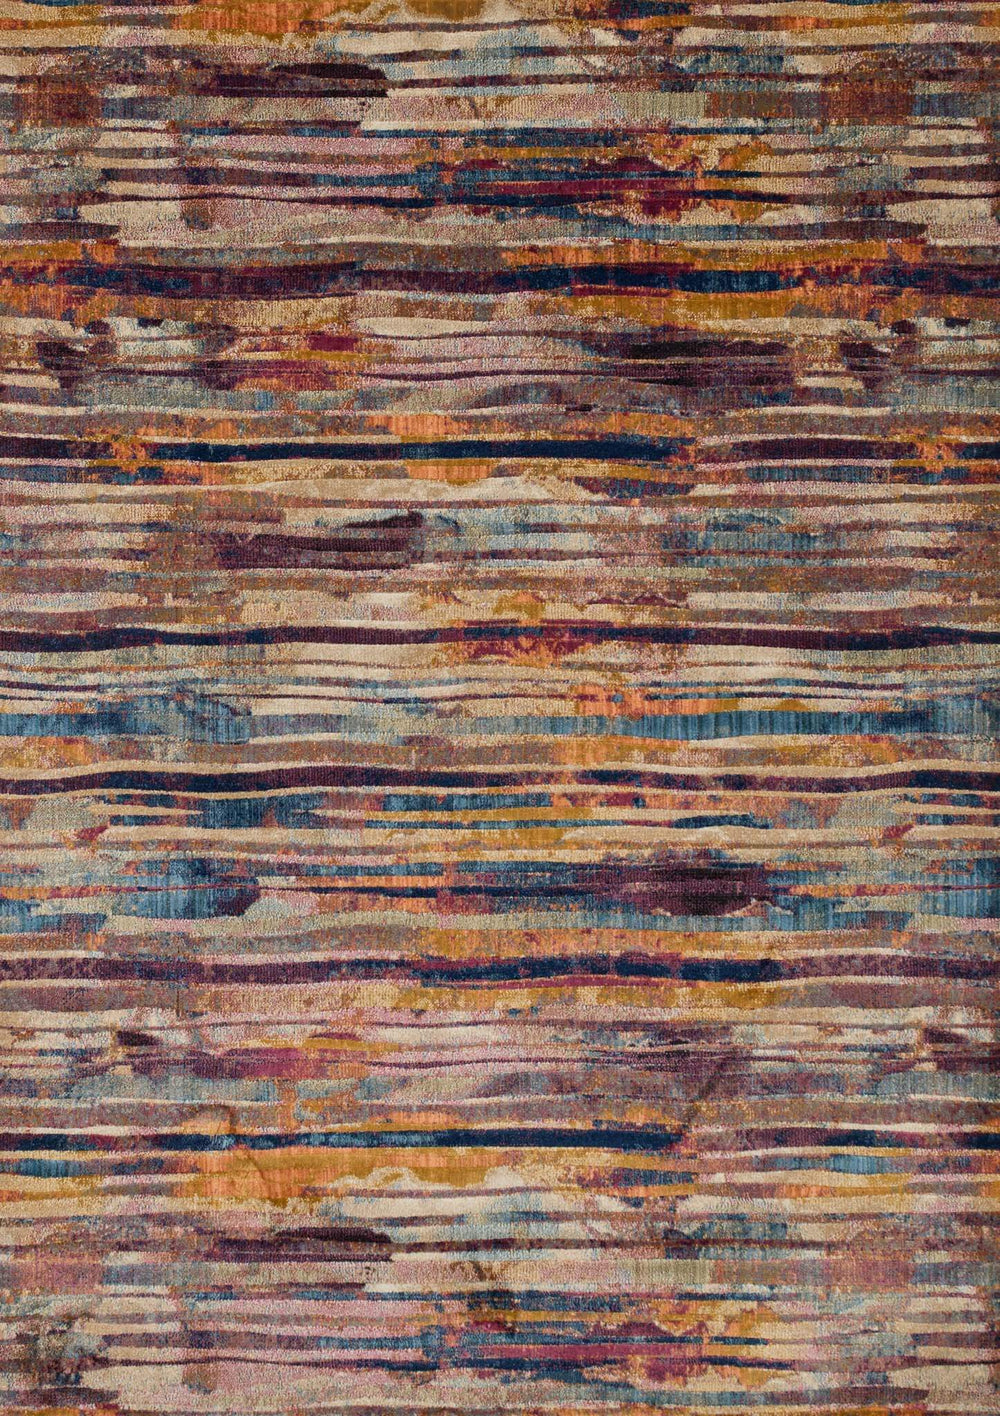 Loloi Rug Dreamscape DM-03 Raspberry/Multi - Rugs1 - High Fashion Home